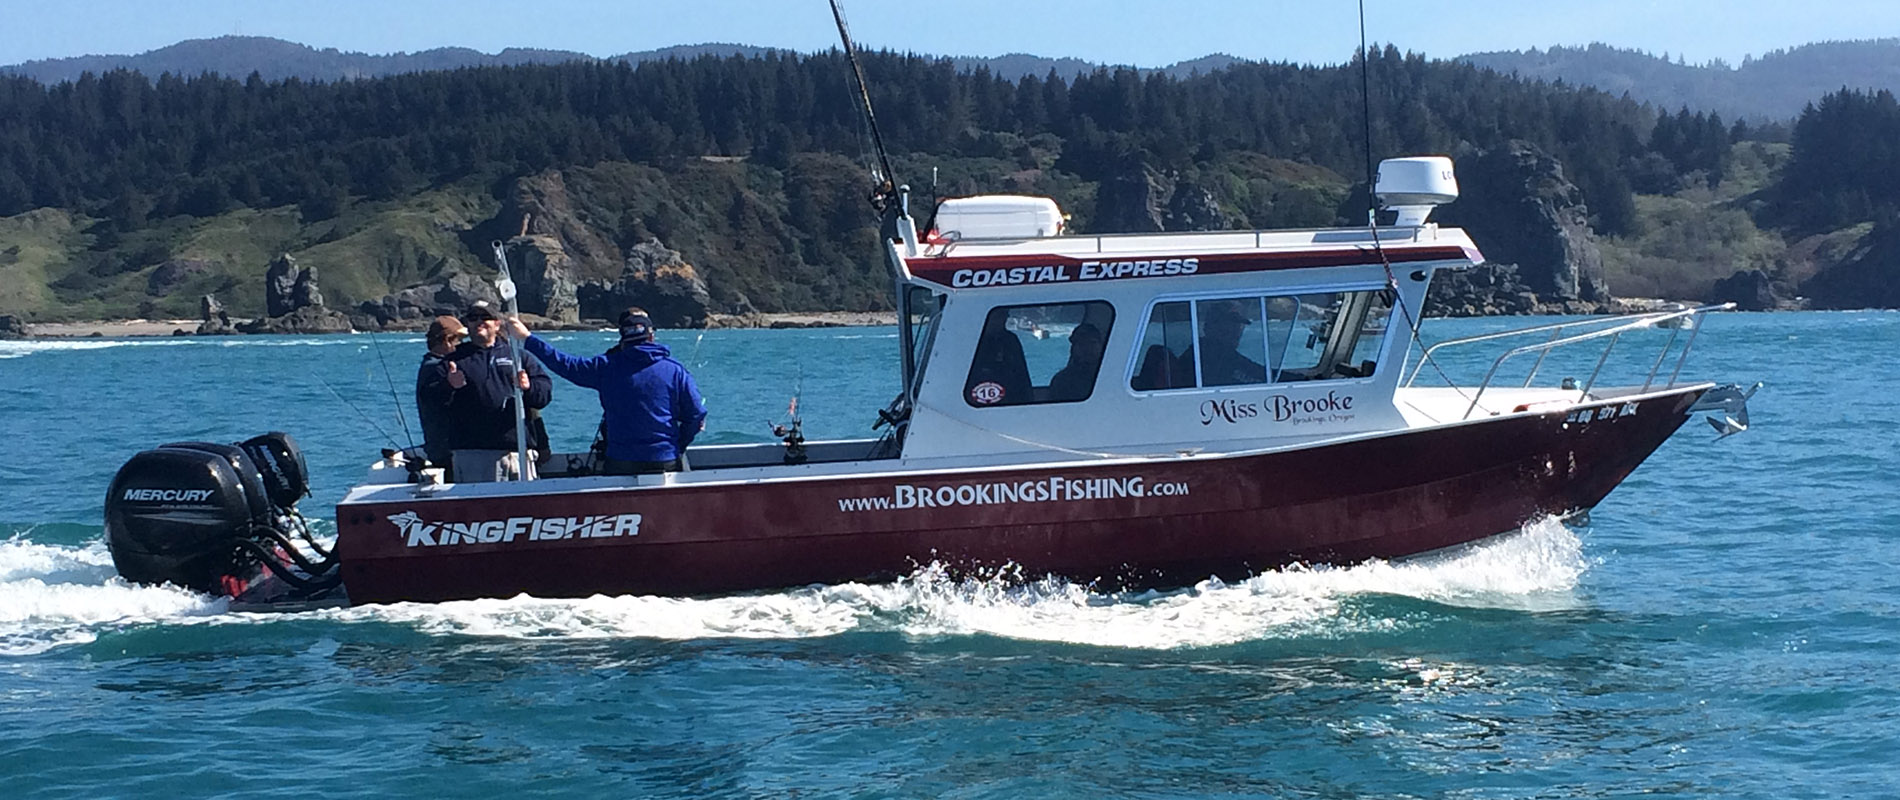 Our story southern oregon fishing brookings fishing for Fishing brookings oregon